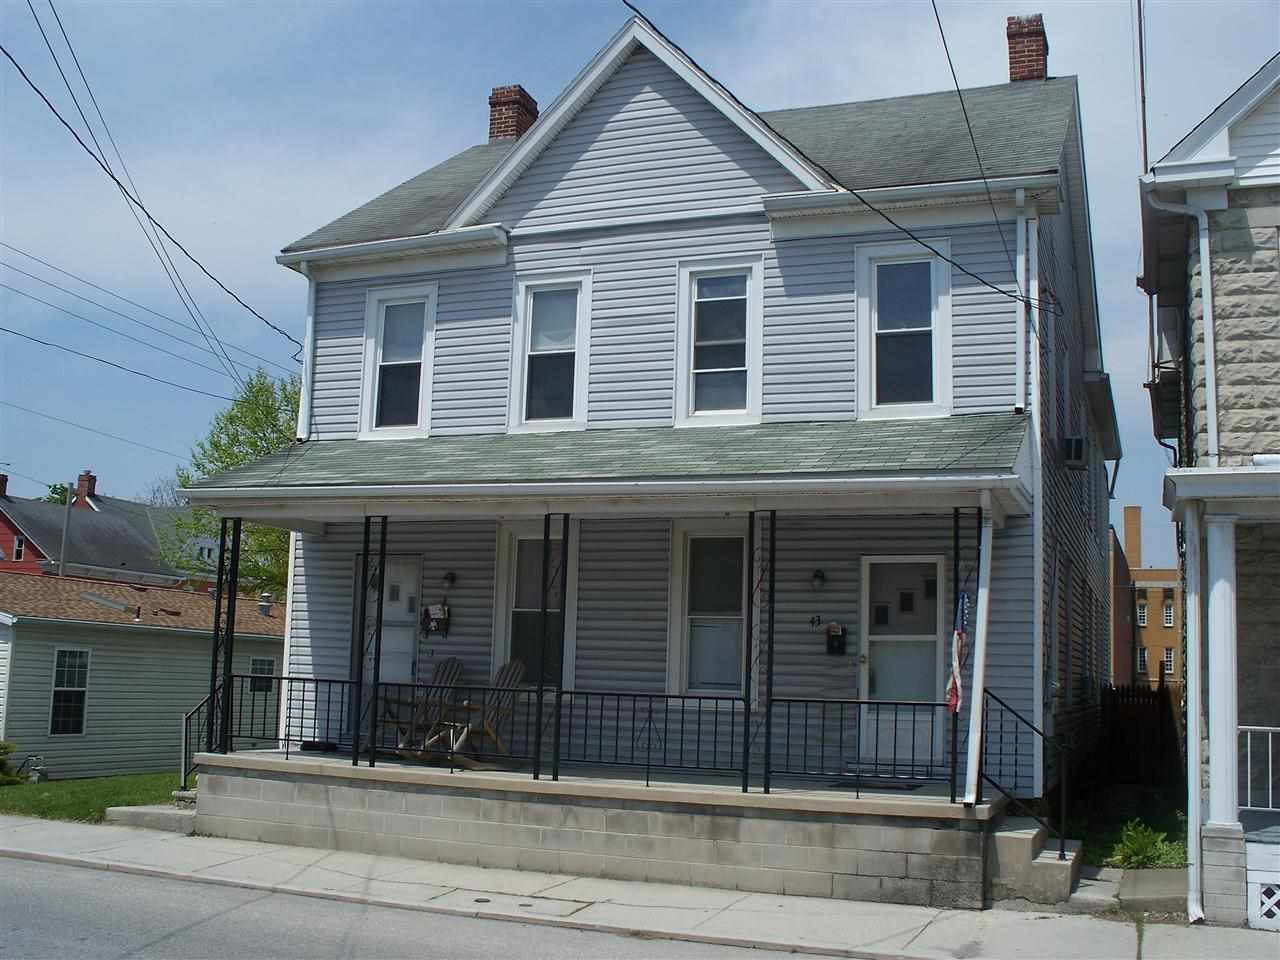 435 W Middle St, Hanover, PA 17331